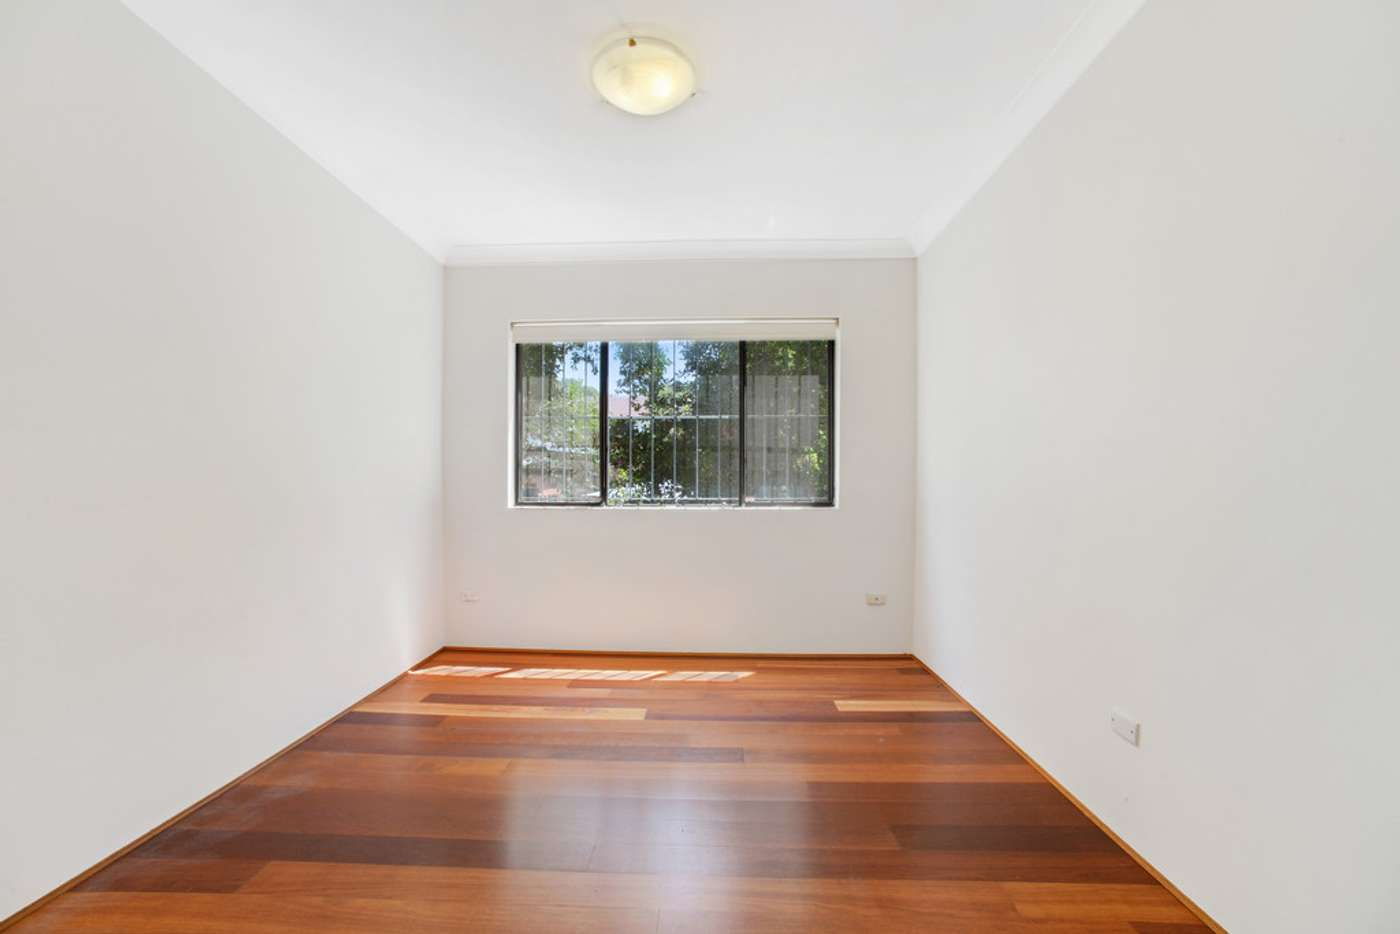 Sixth view of Homely apartment listing, 2/24-26 Grosvenor Street, Kensington NSW 2033